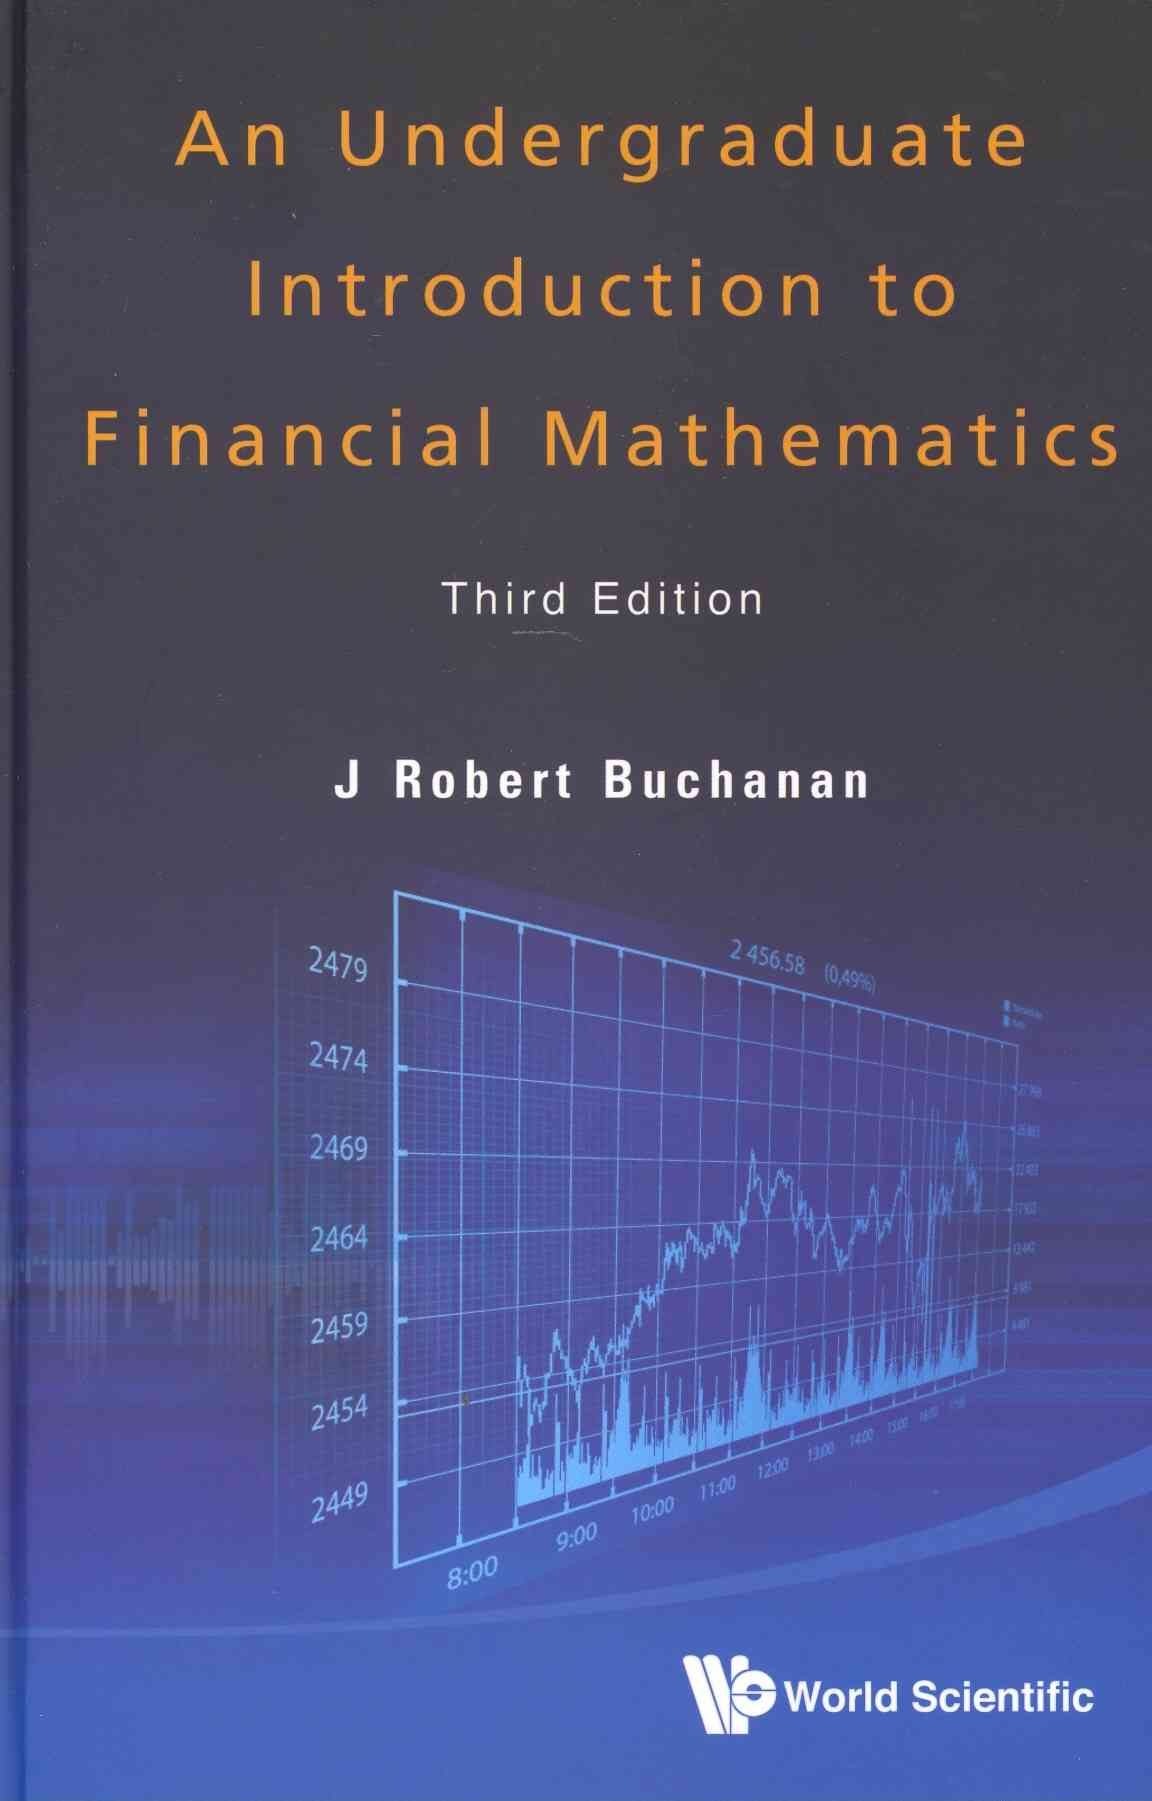 An Undergraduate Introduction to Finacial Mathematics By Buchanan, J. Robert